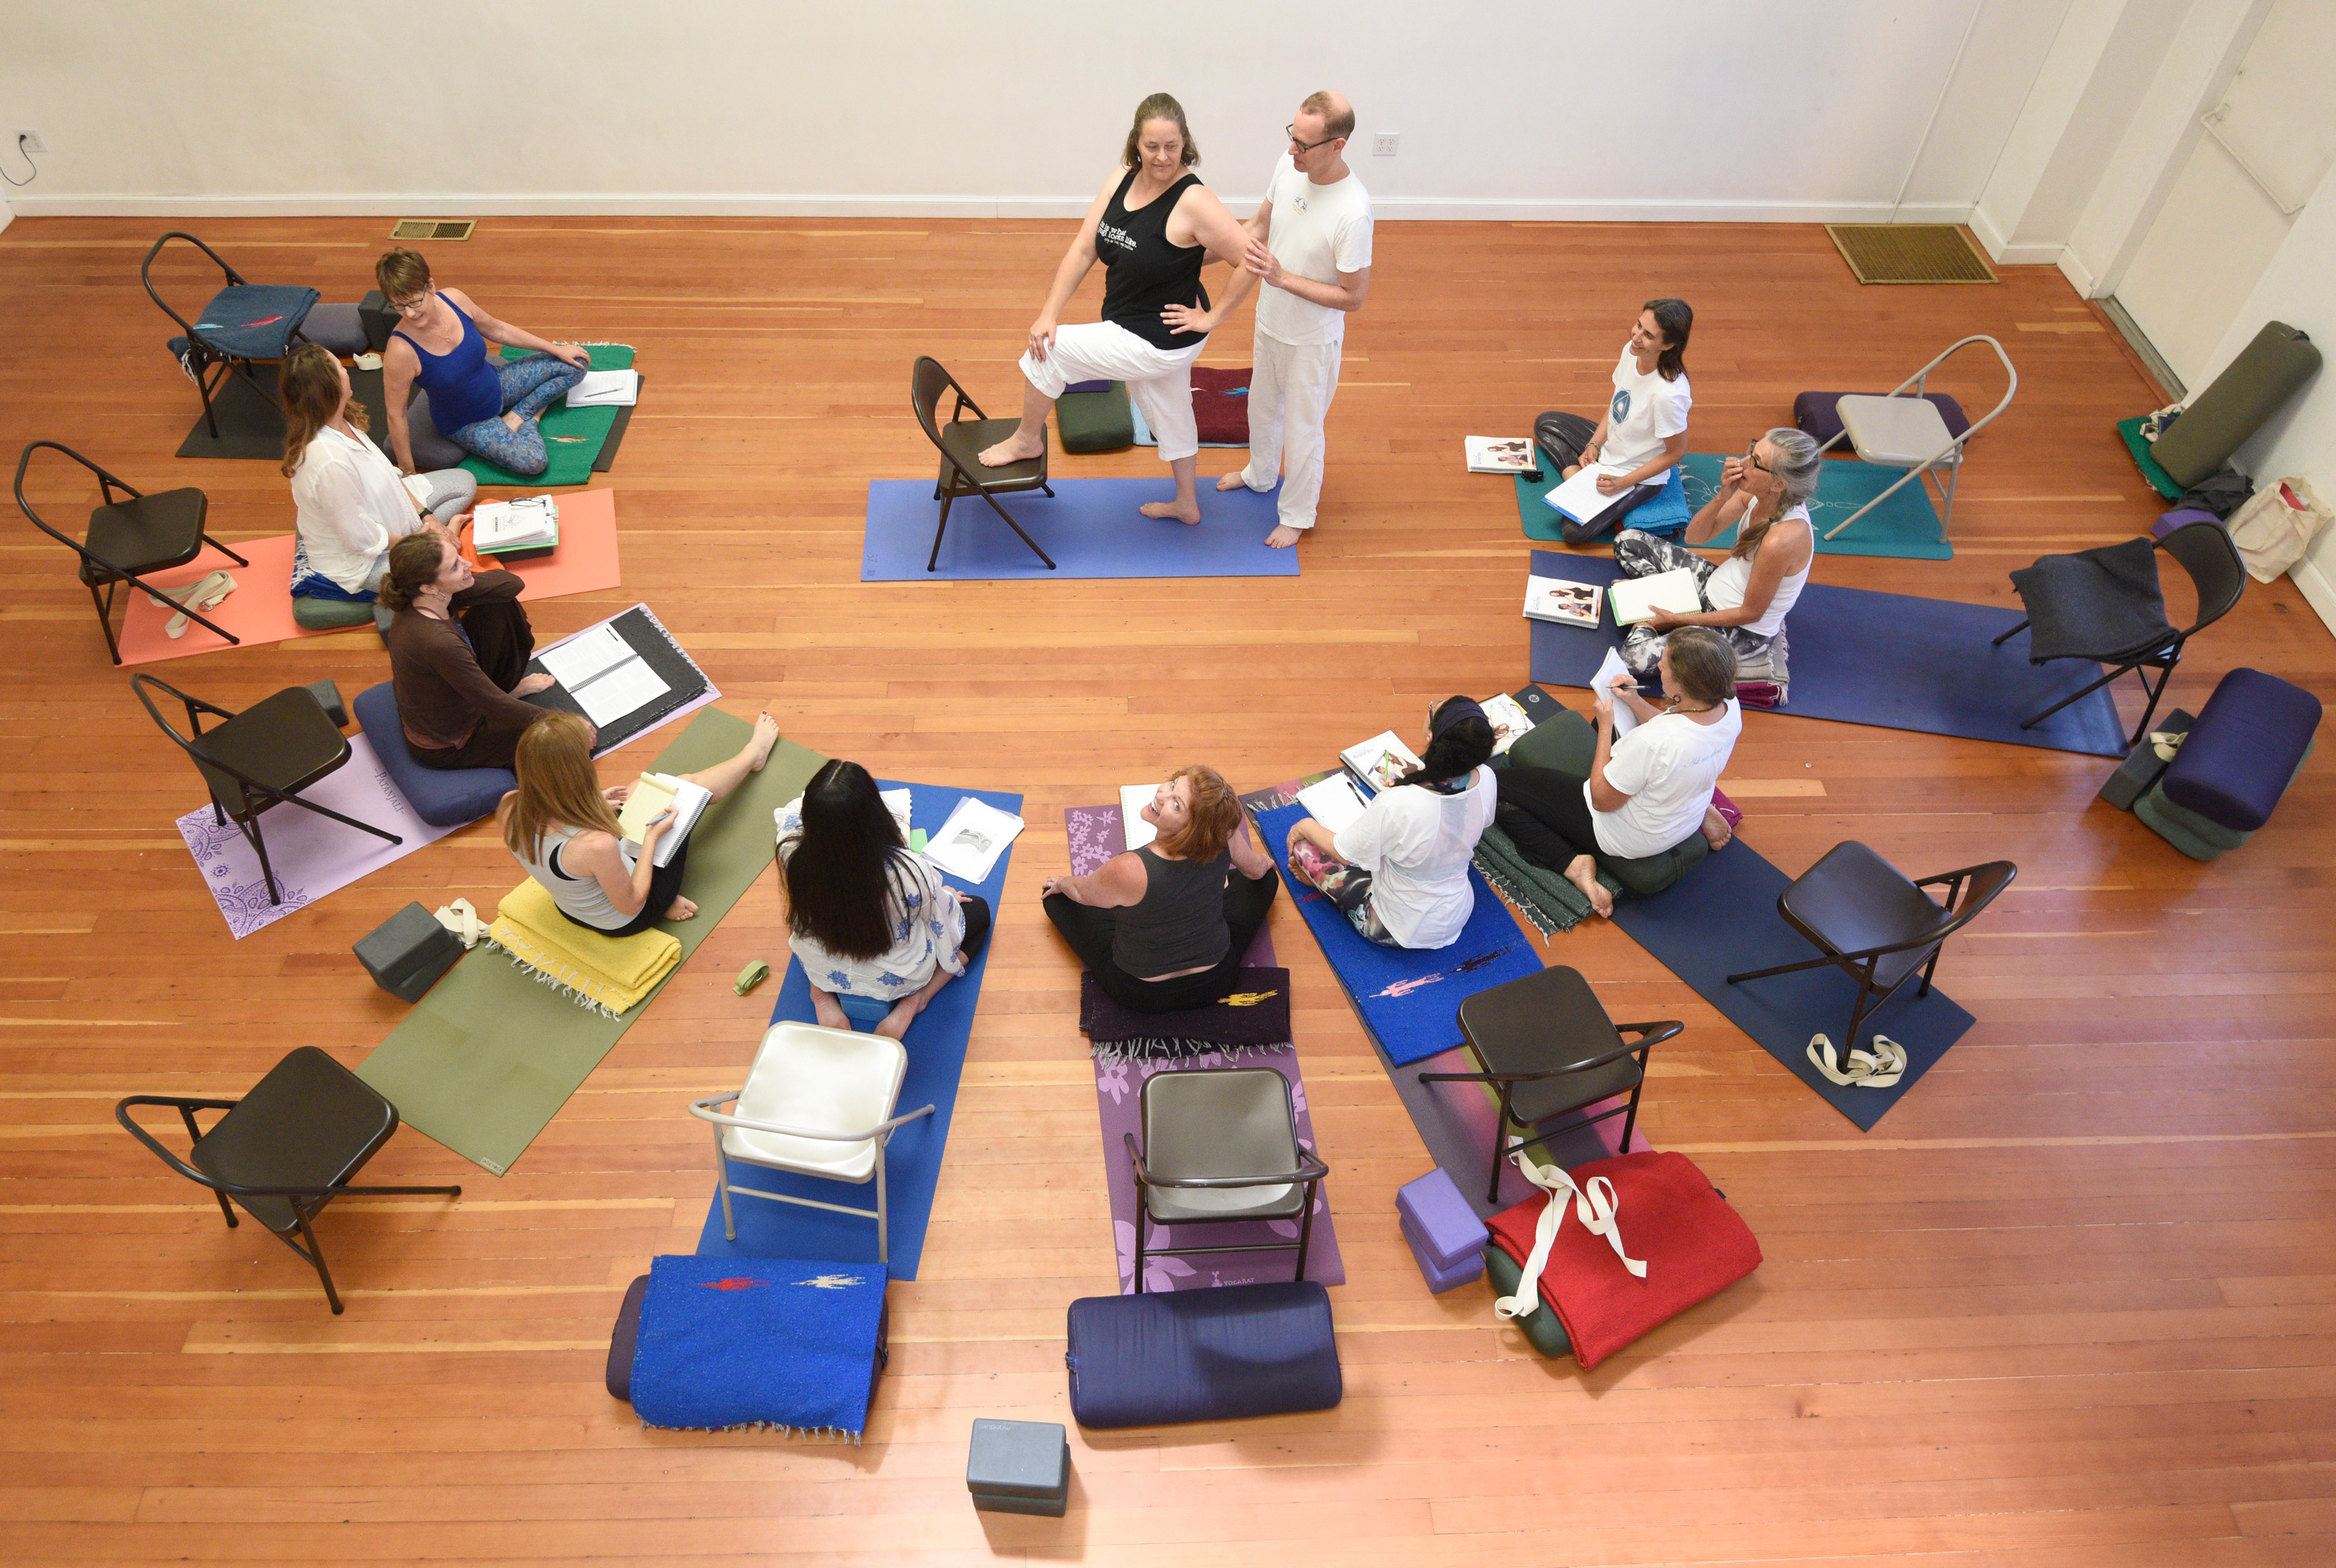 Yoga Teaching In Santa Barbara The Santa Barbara Independent